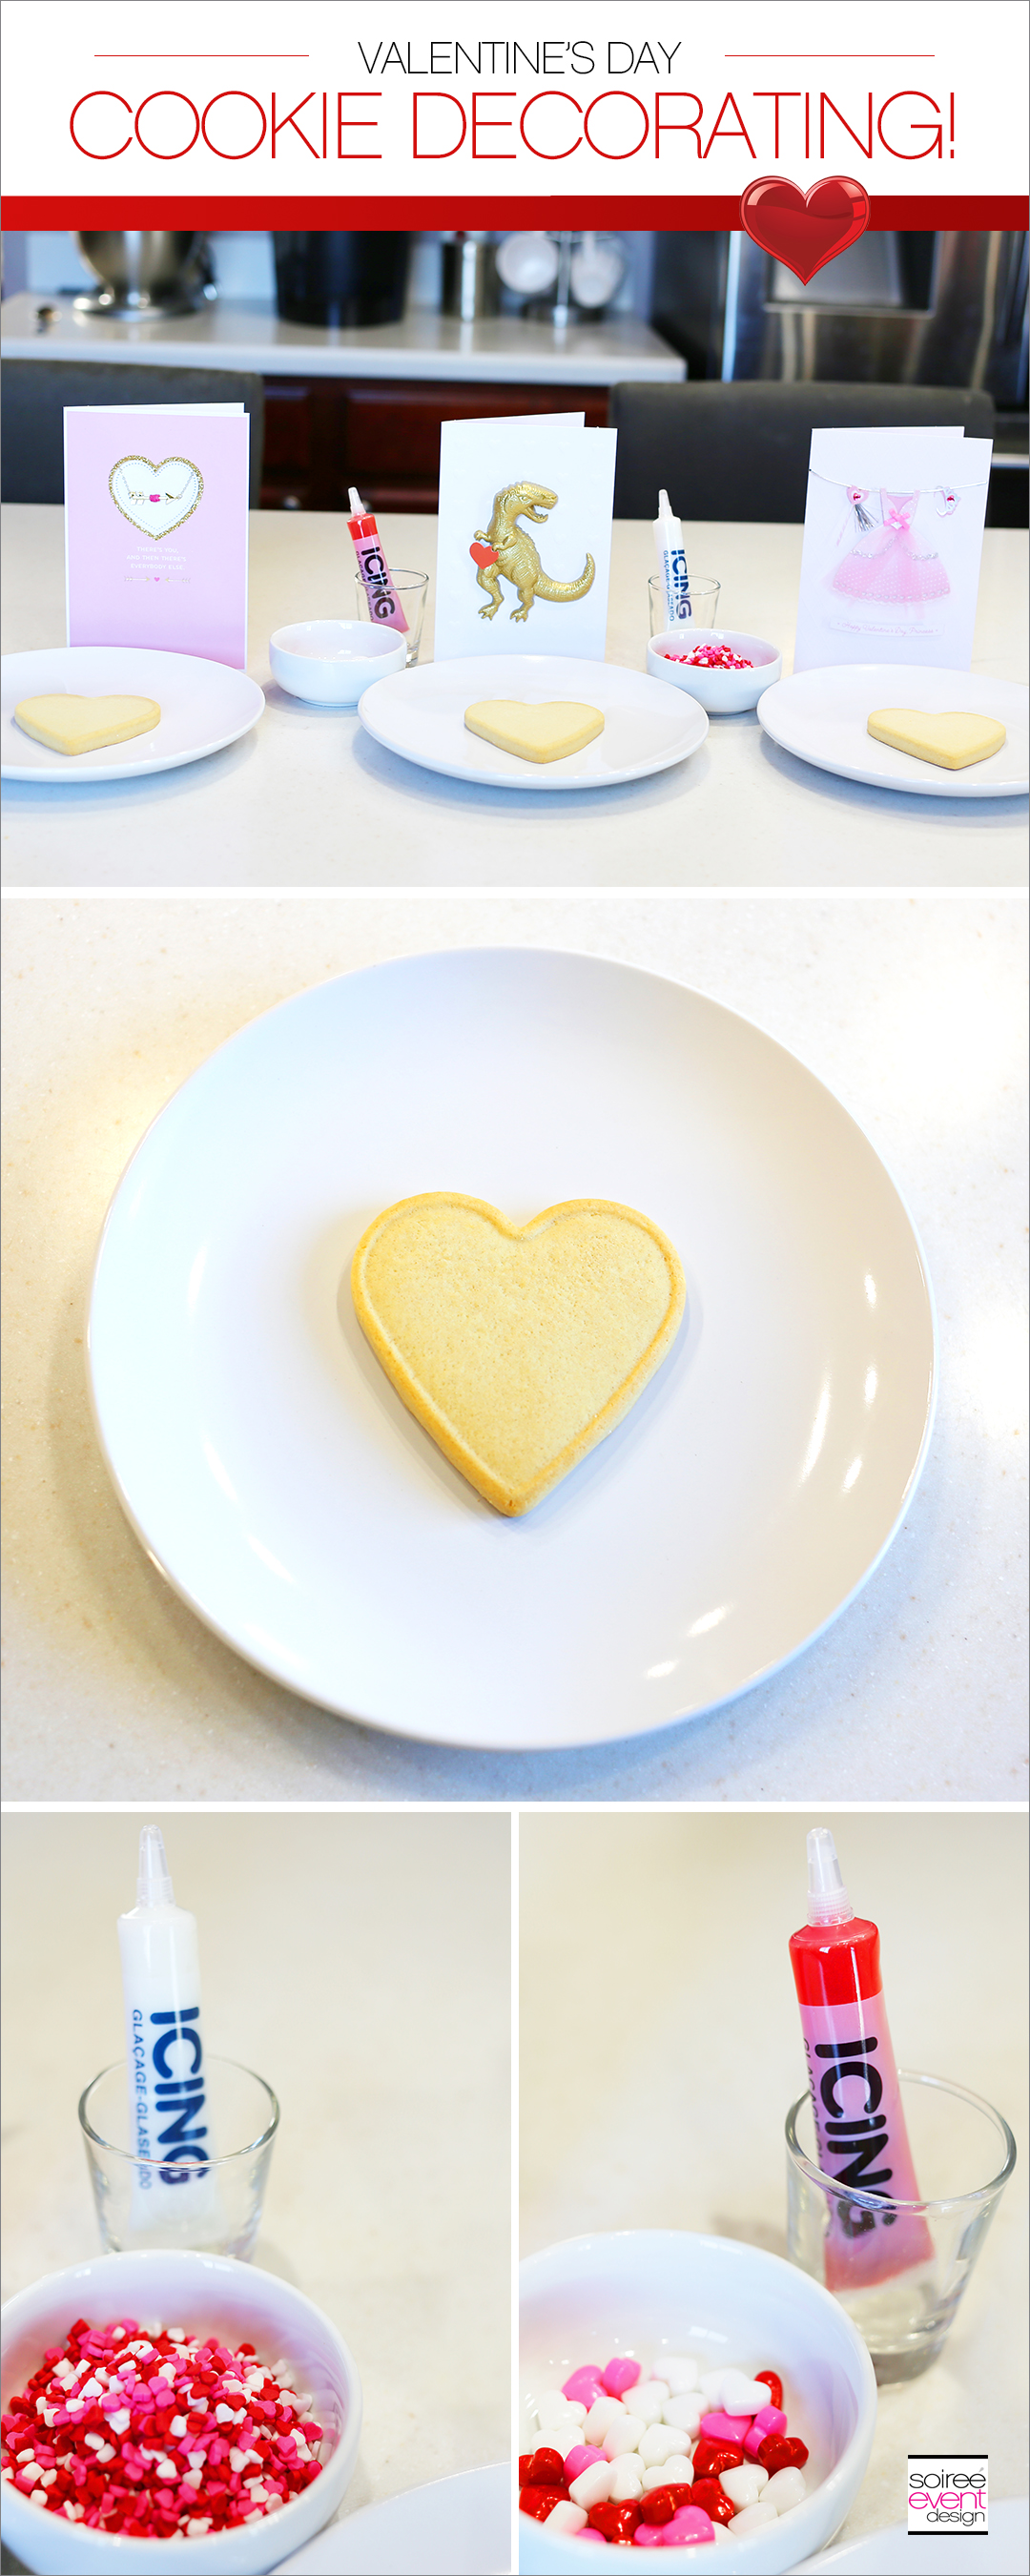 Hallmark Valentines Day Cookie Decorating